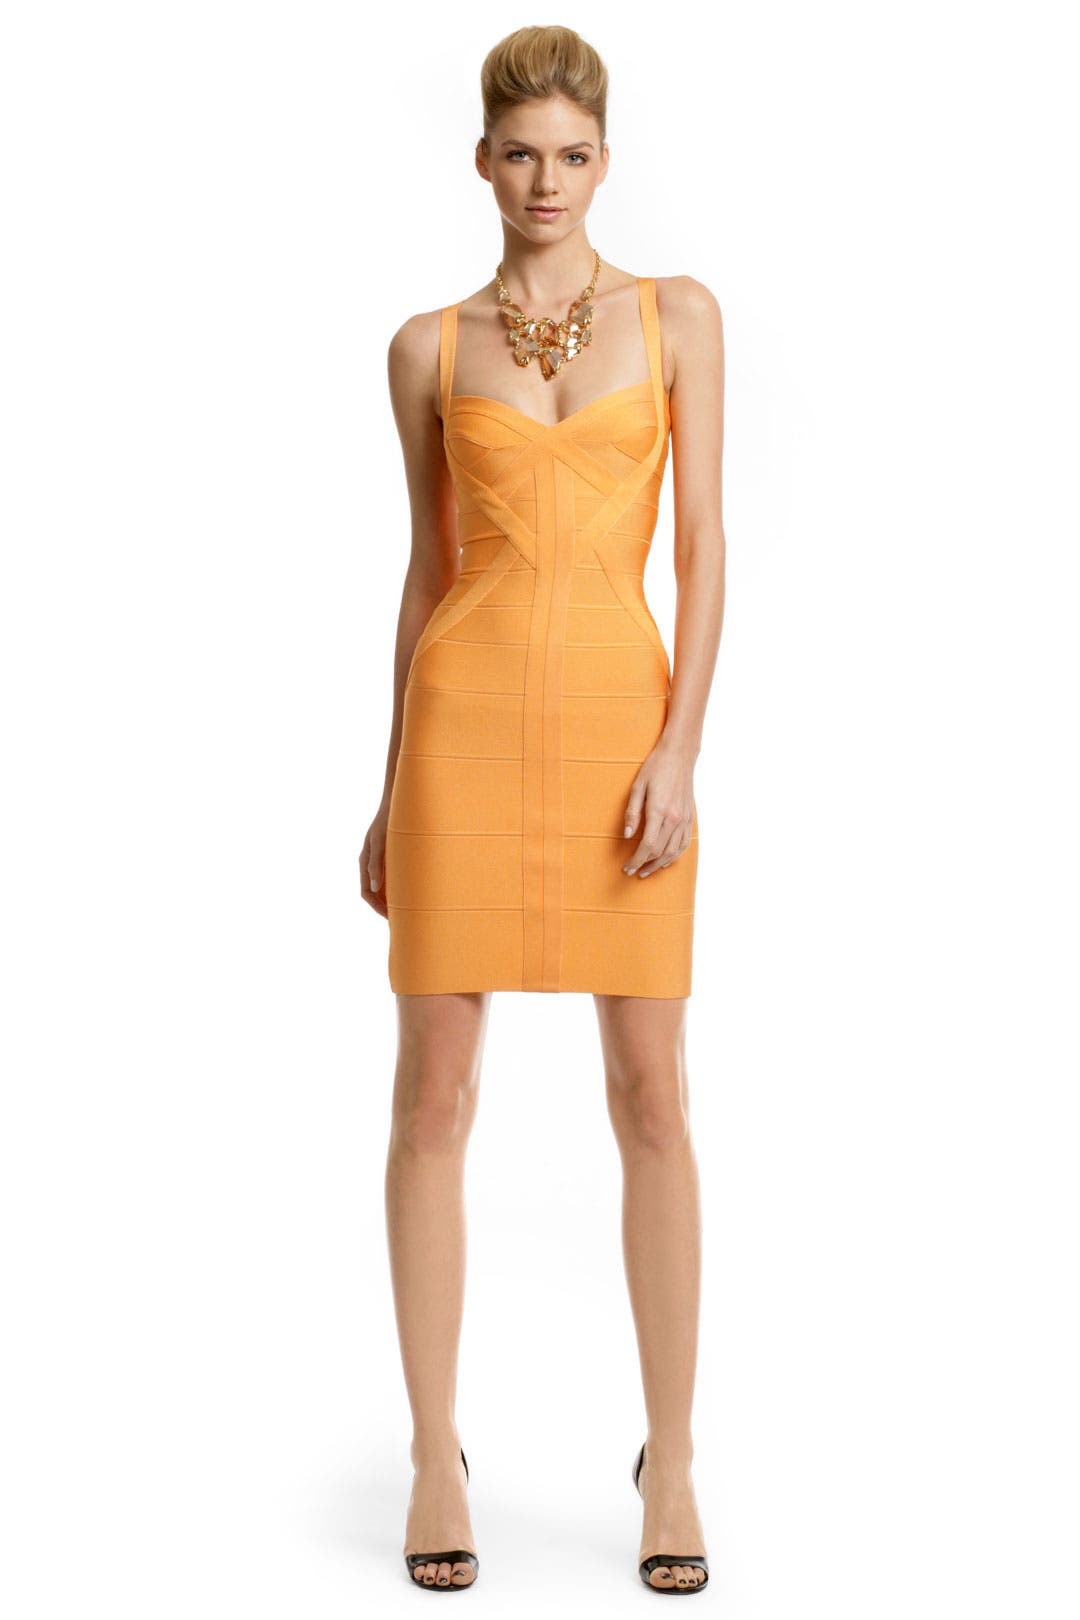 Tangerine Margarita Dress by Hervé Léger